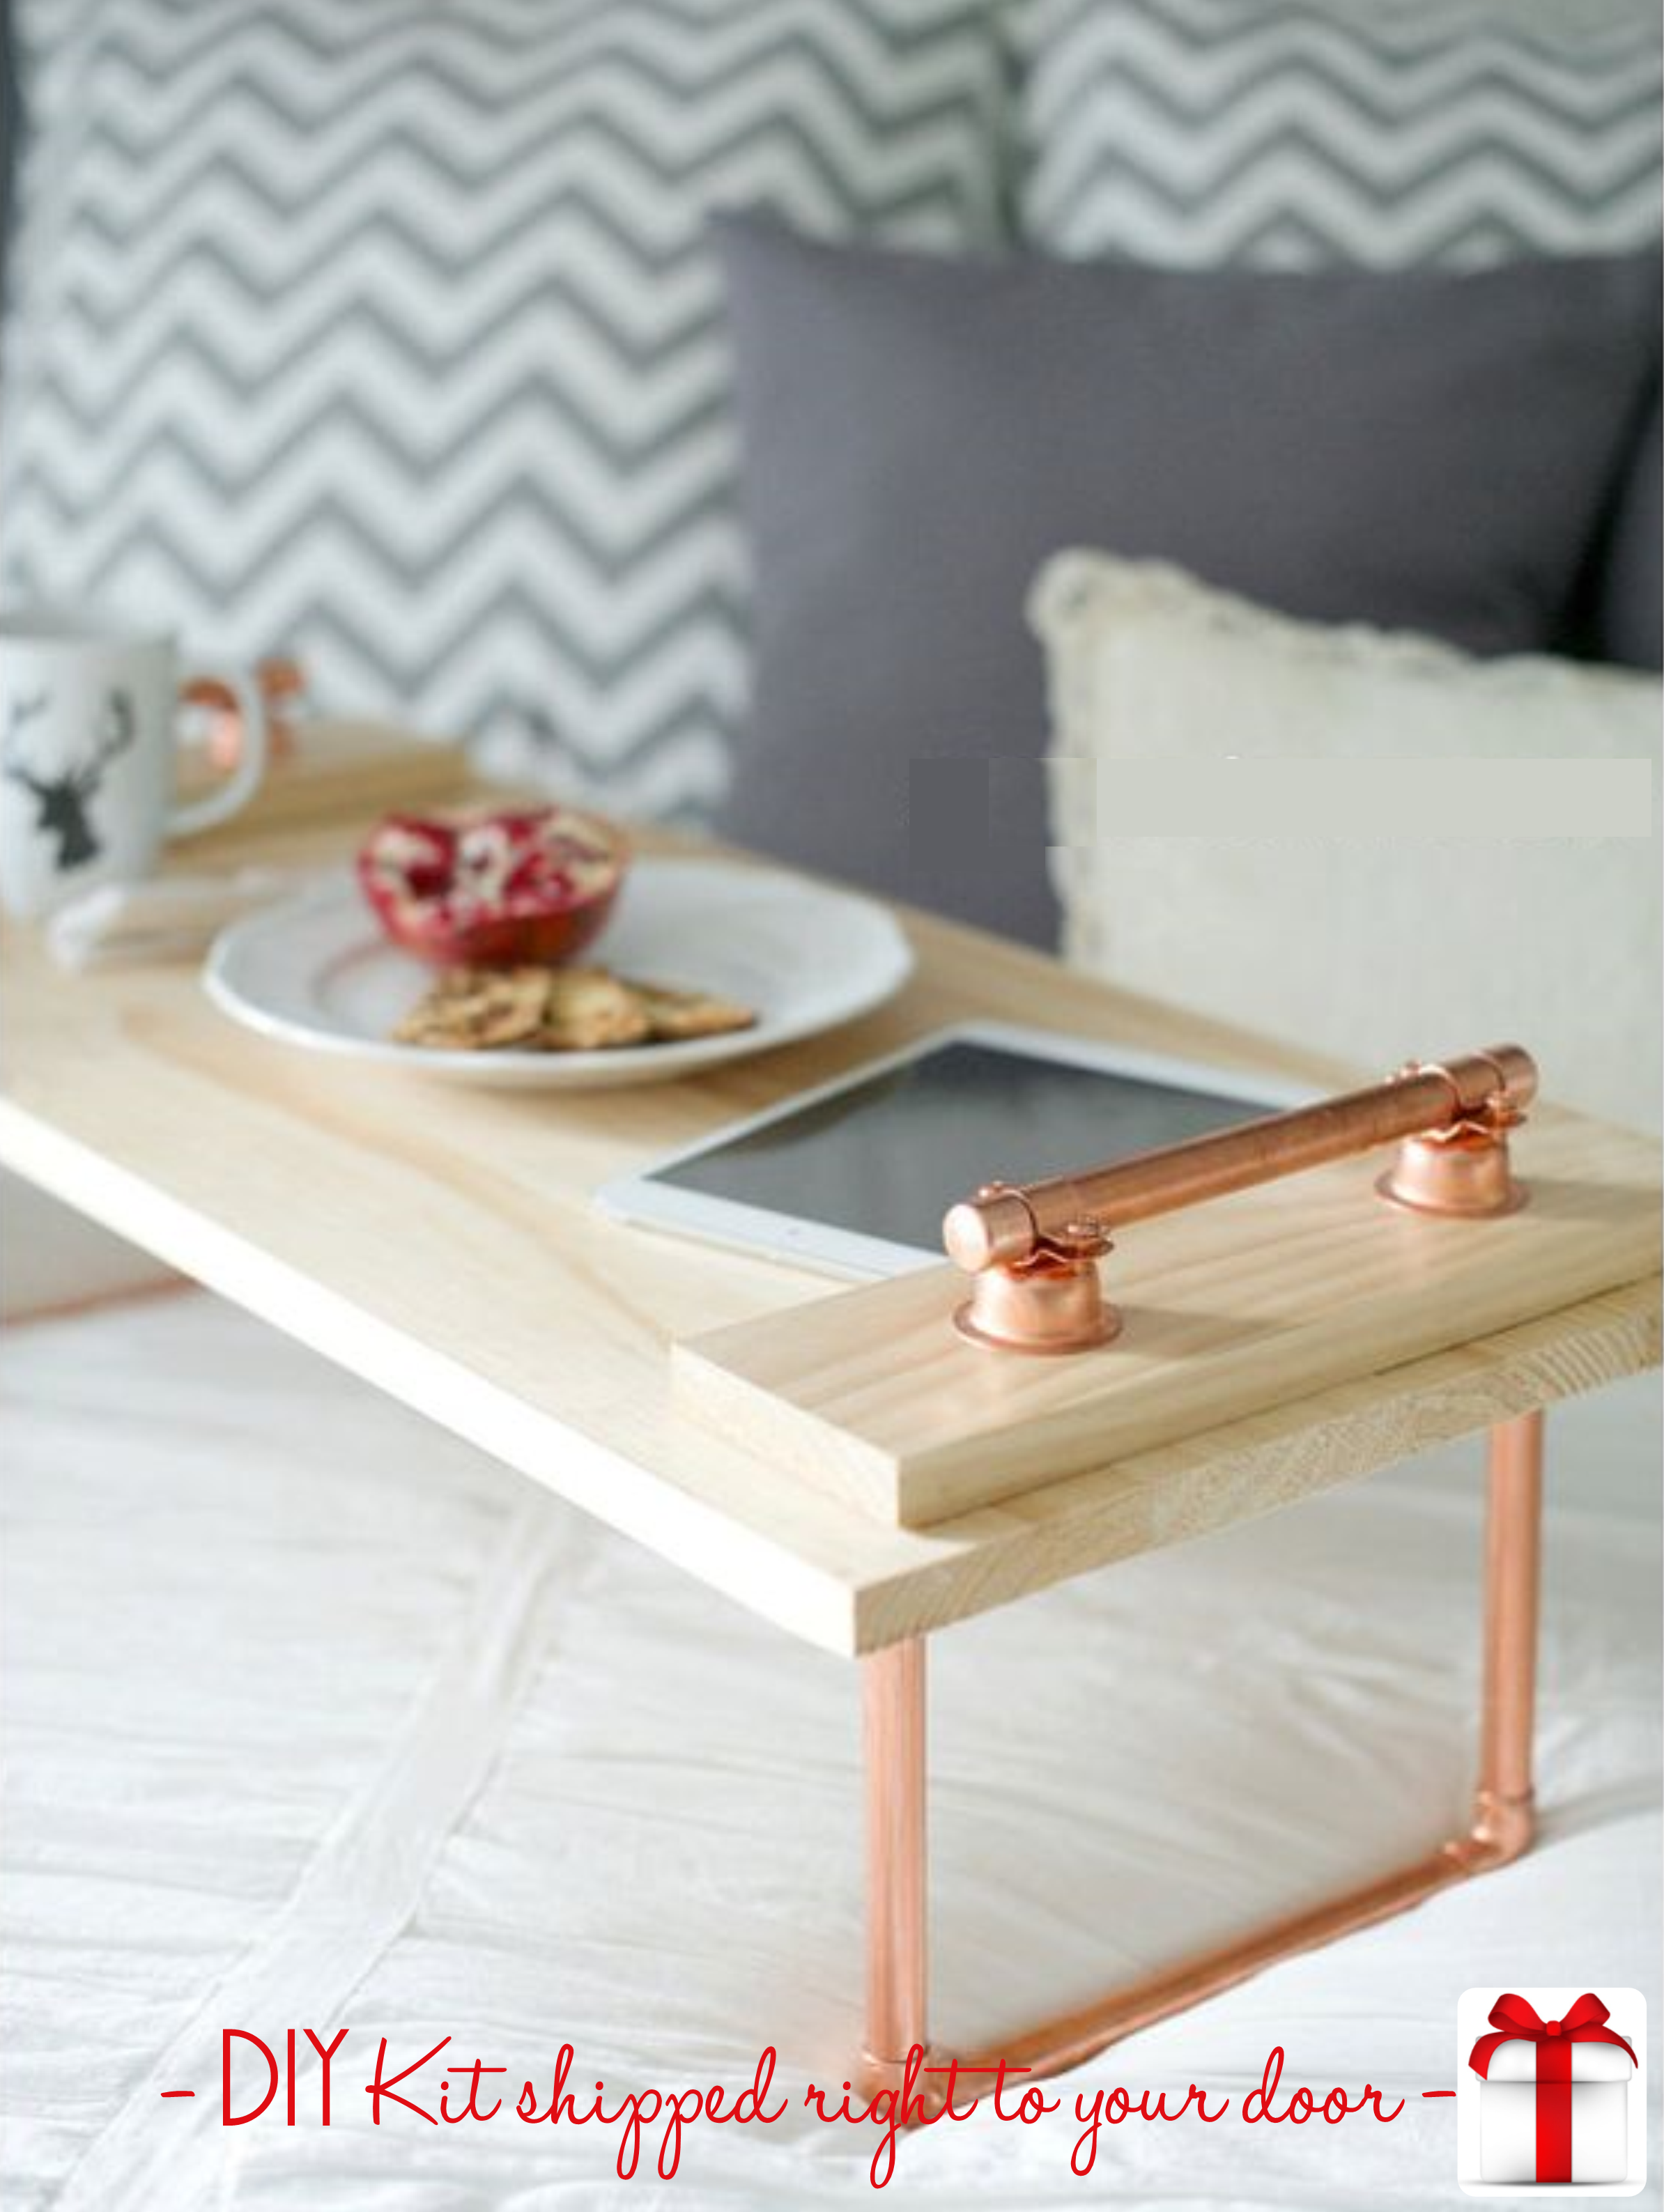 Diy Copper Wood Lap Tray 24 99 Shipping All Materials And